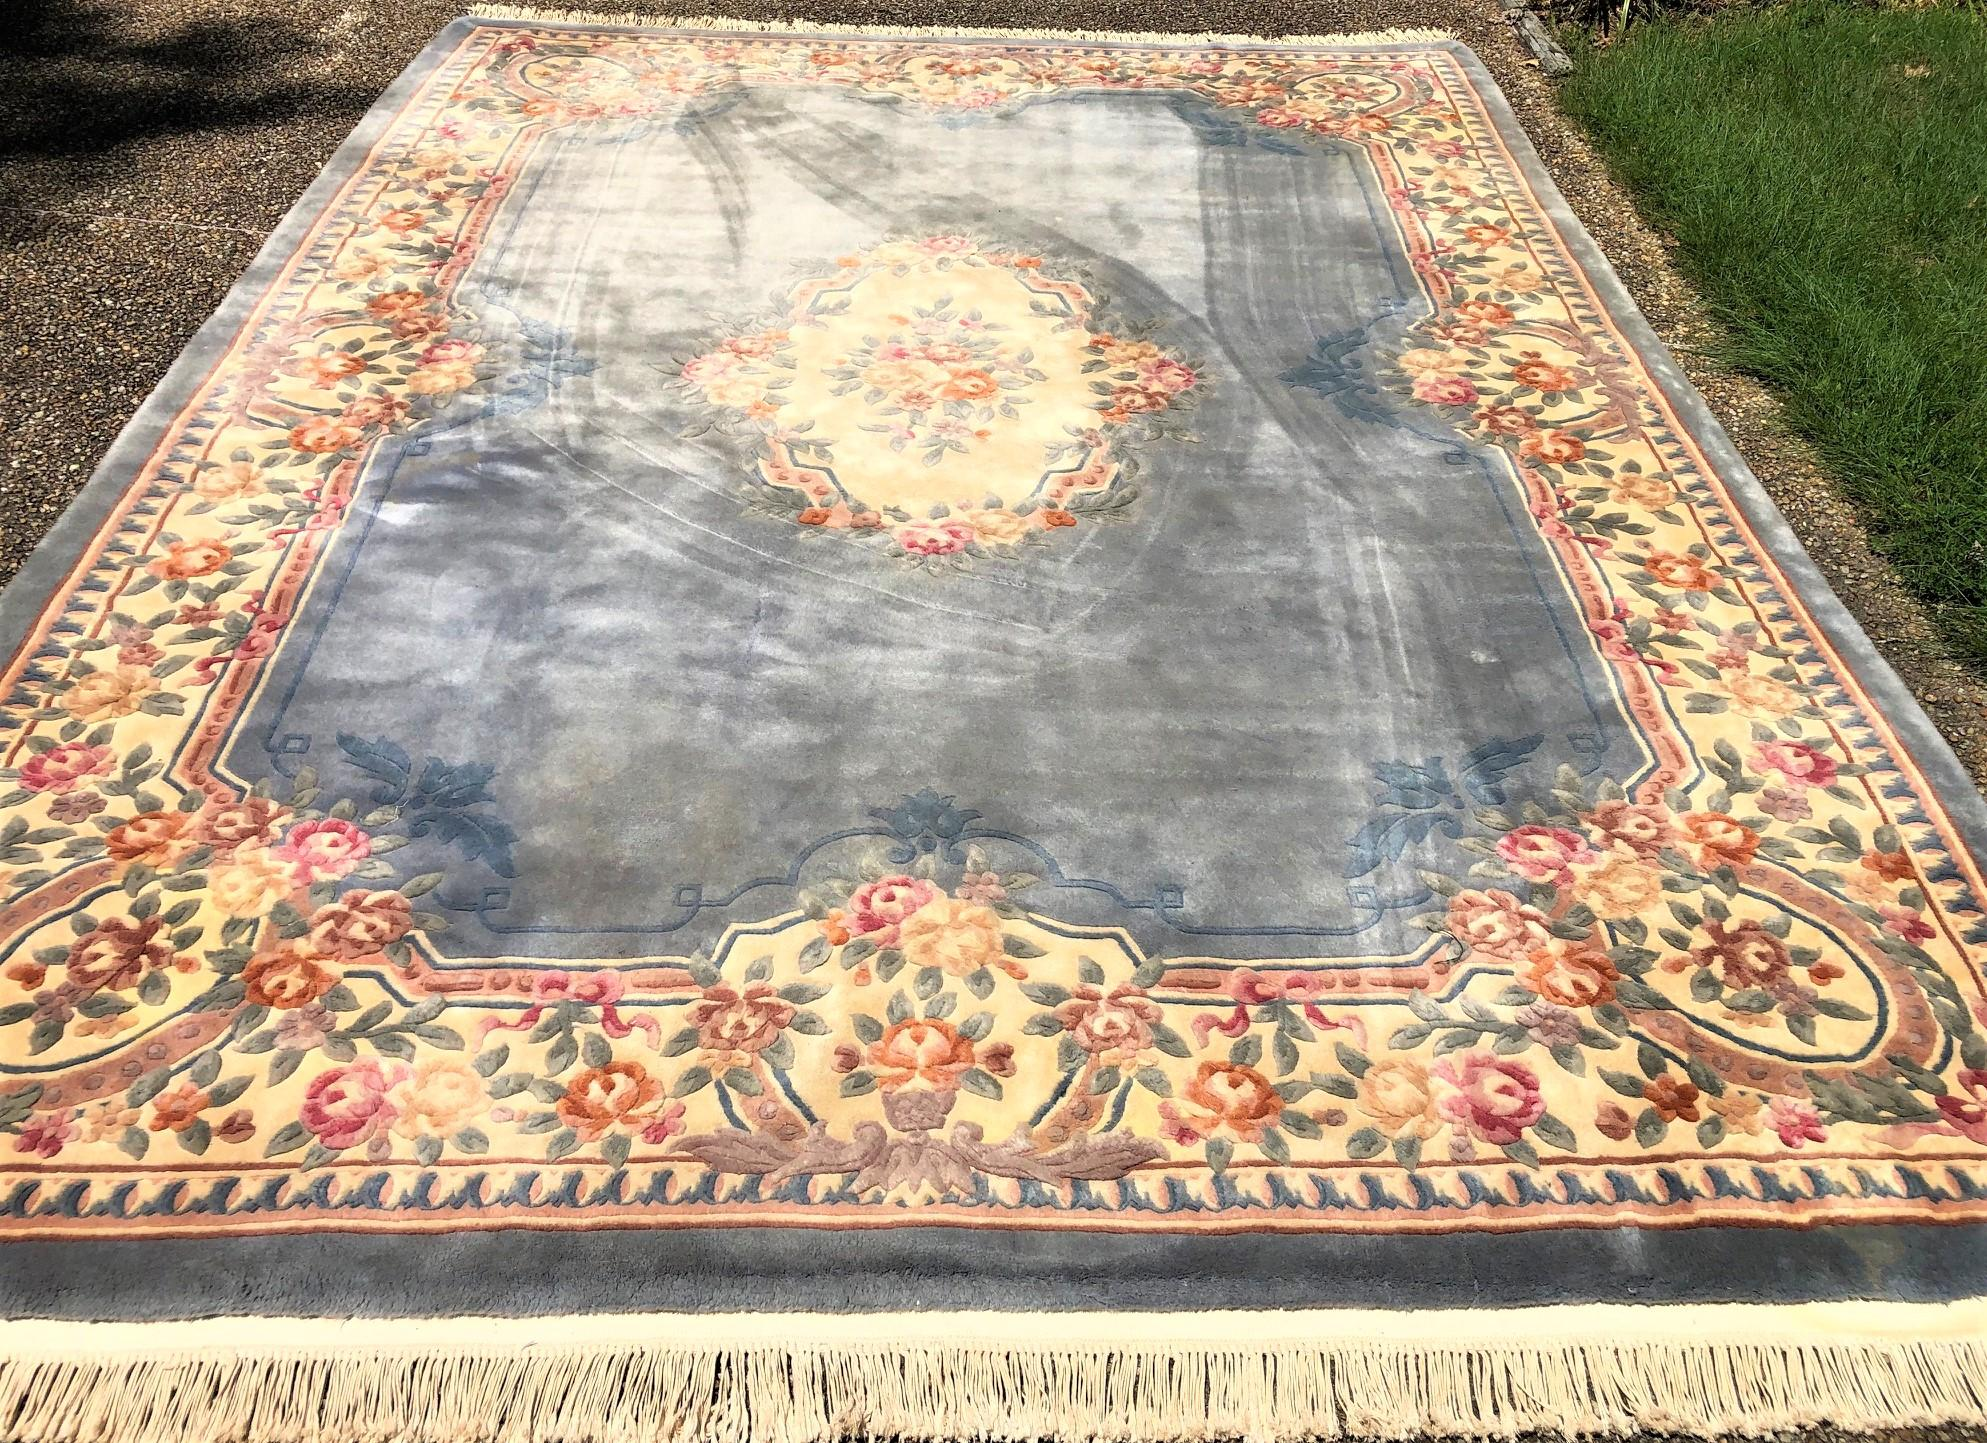 AUBUSSON 90 LINE HAND KNOTTED RUG - 8.7 x 11.7